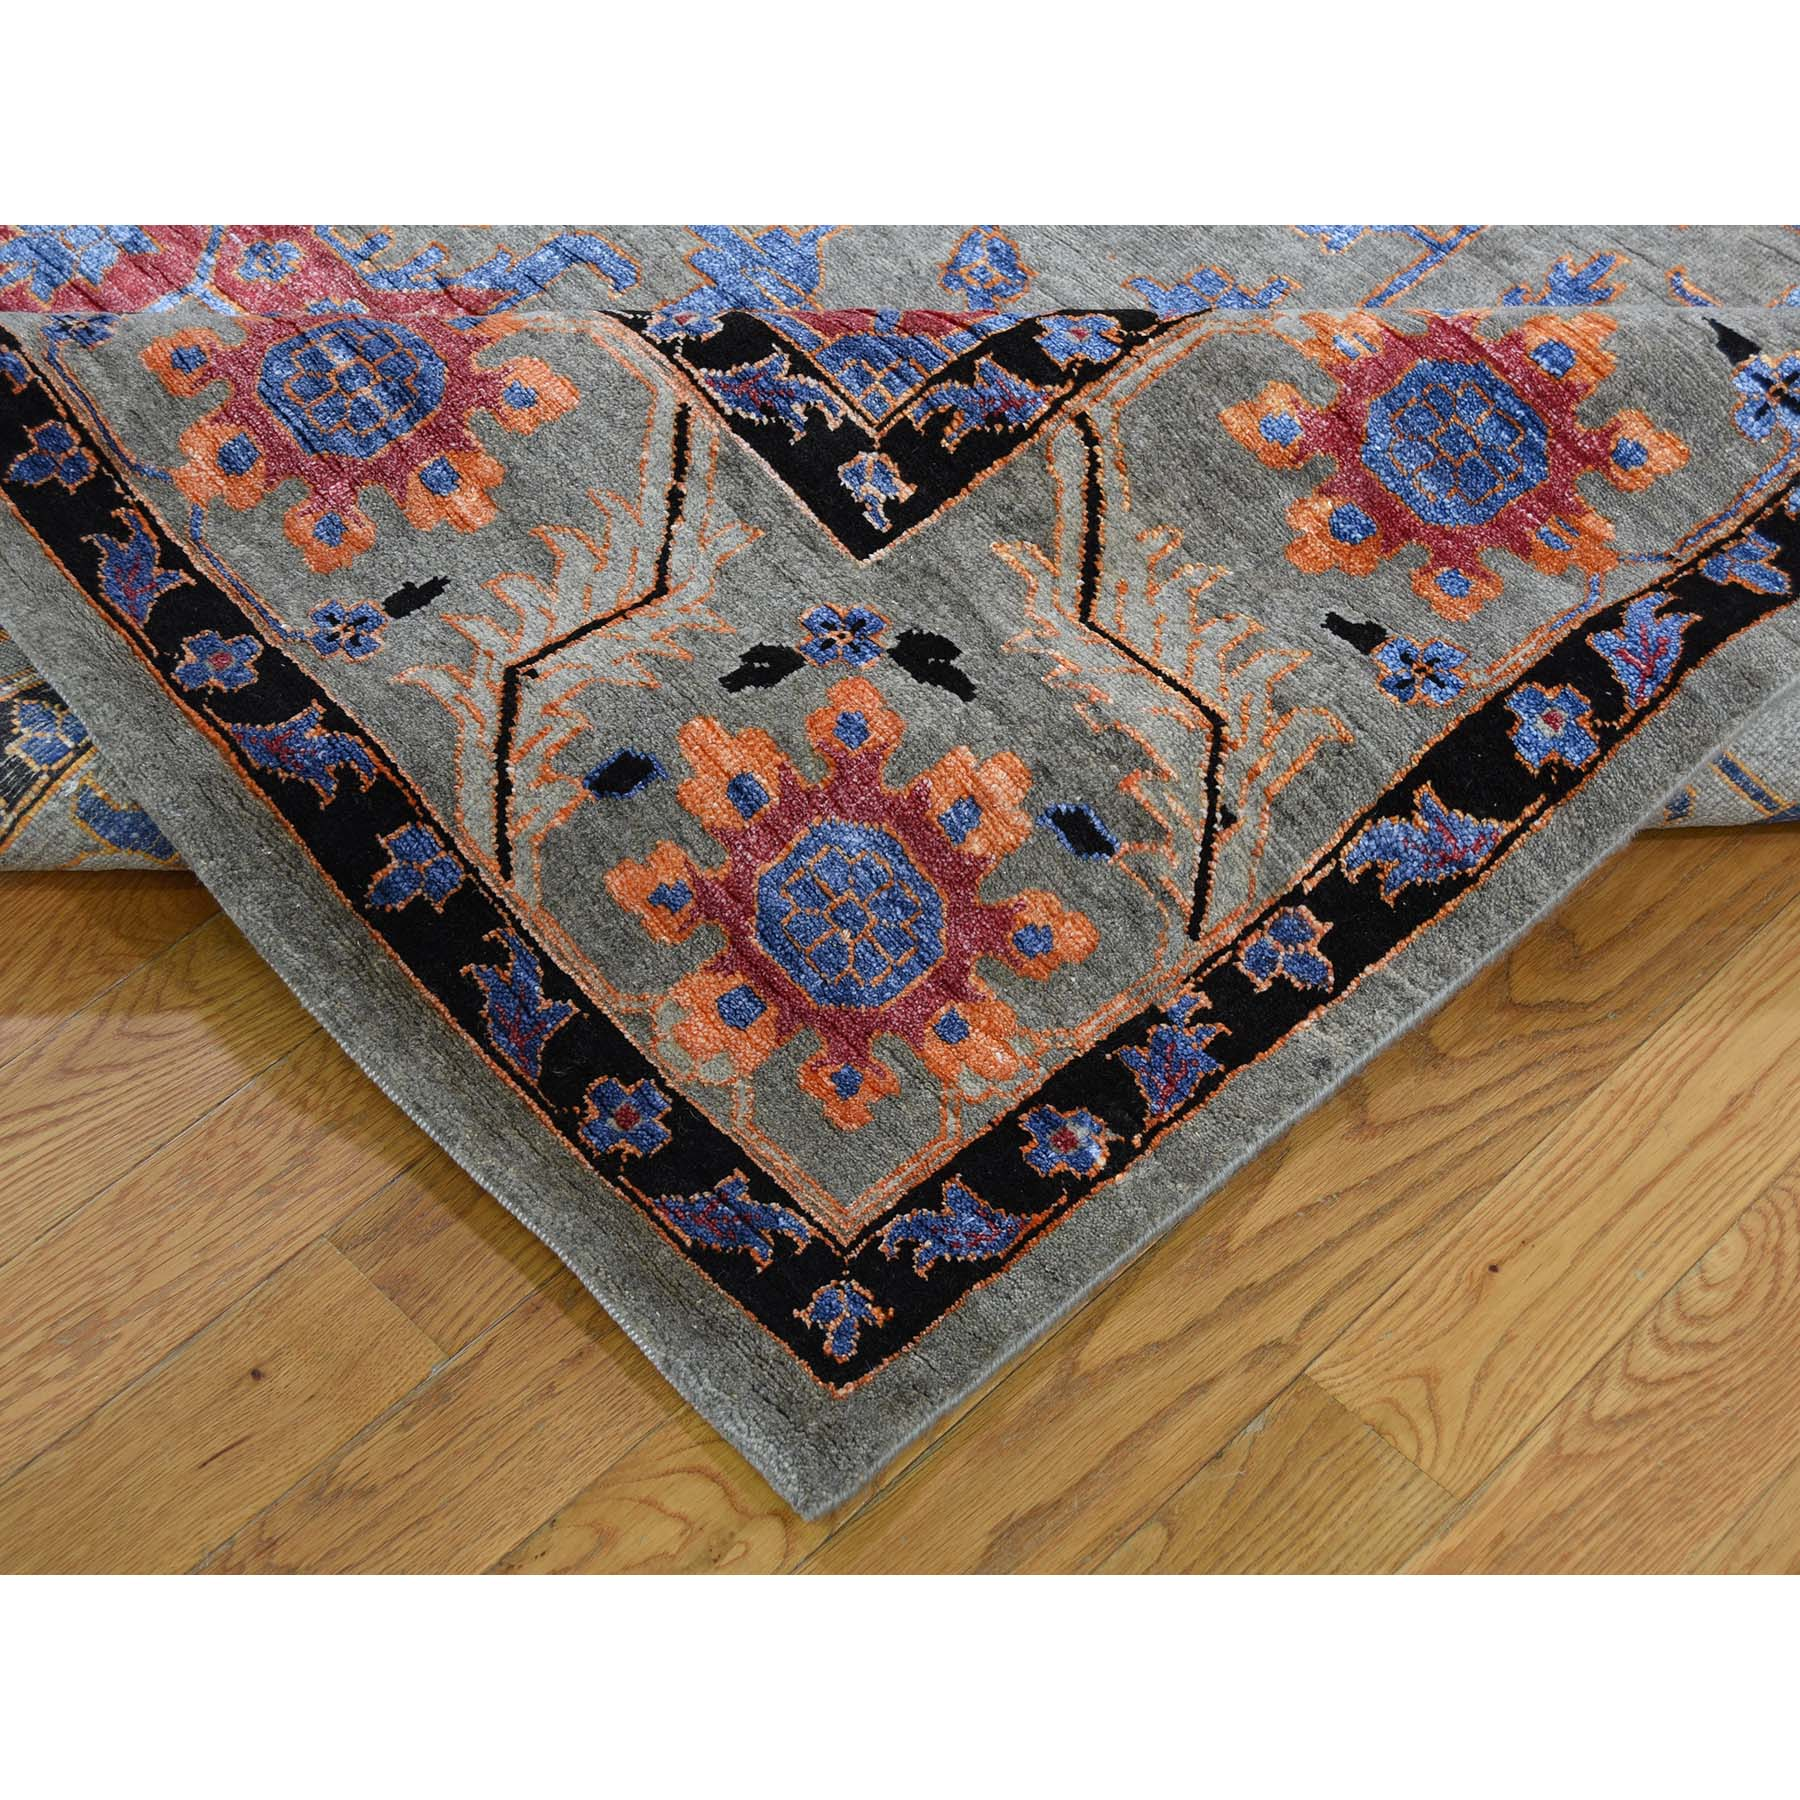 8-10 x12-1  Hand-Knotted Heriz Design Wool And Silk Oriental Rug